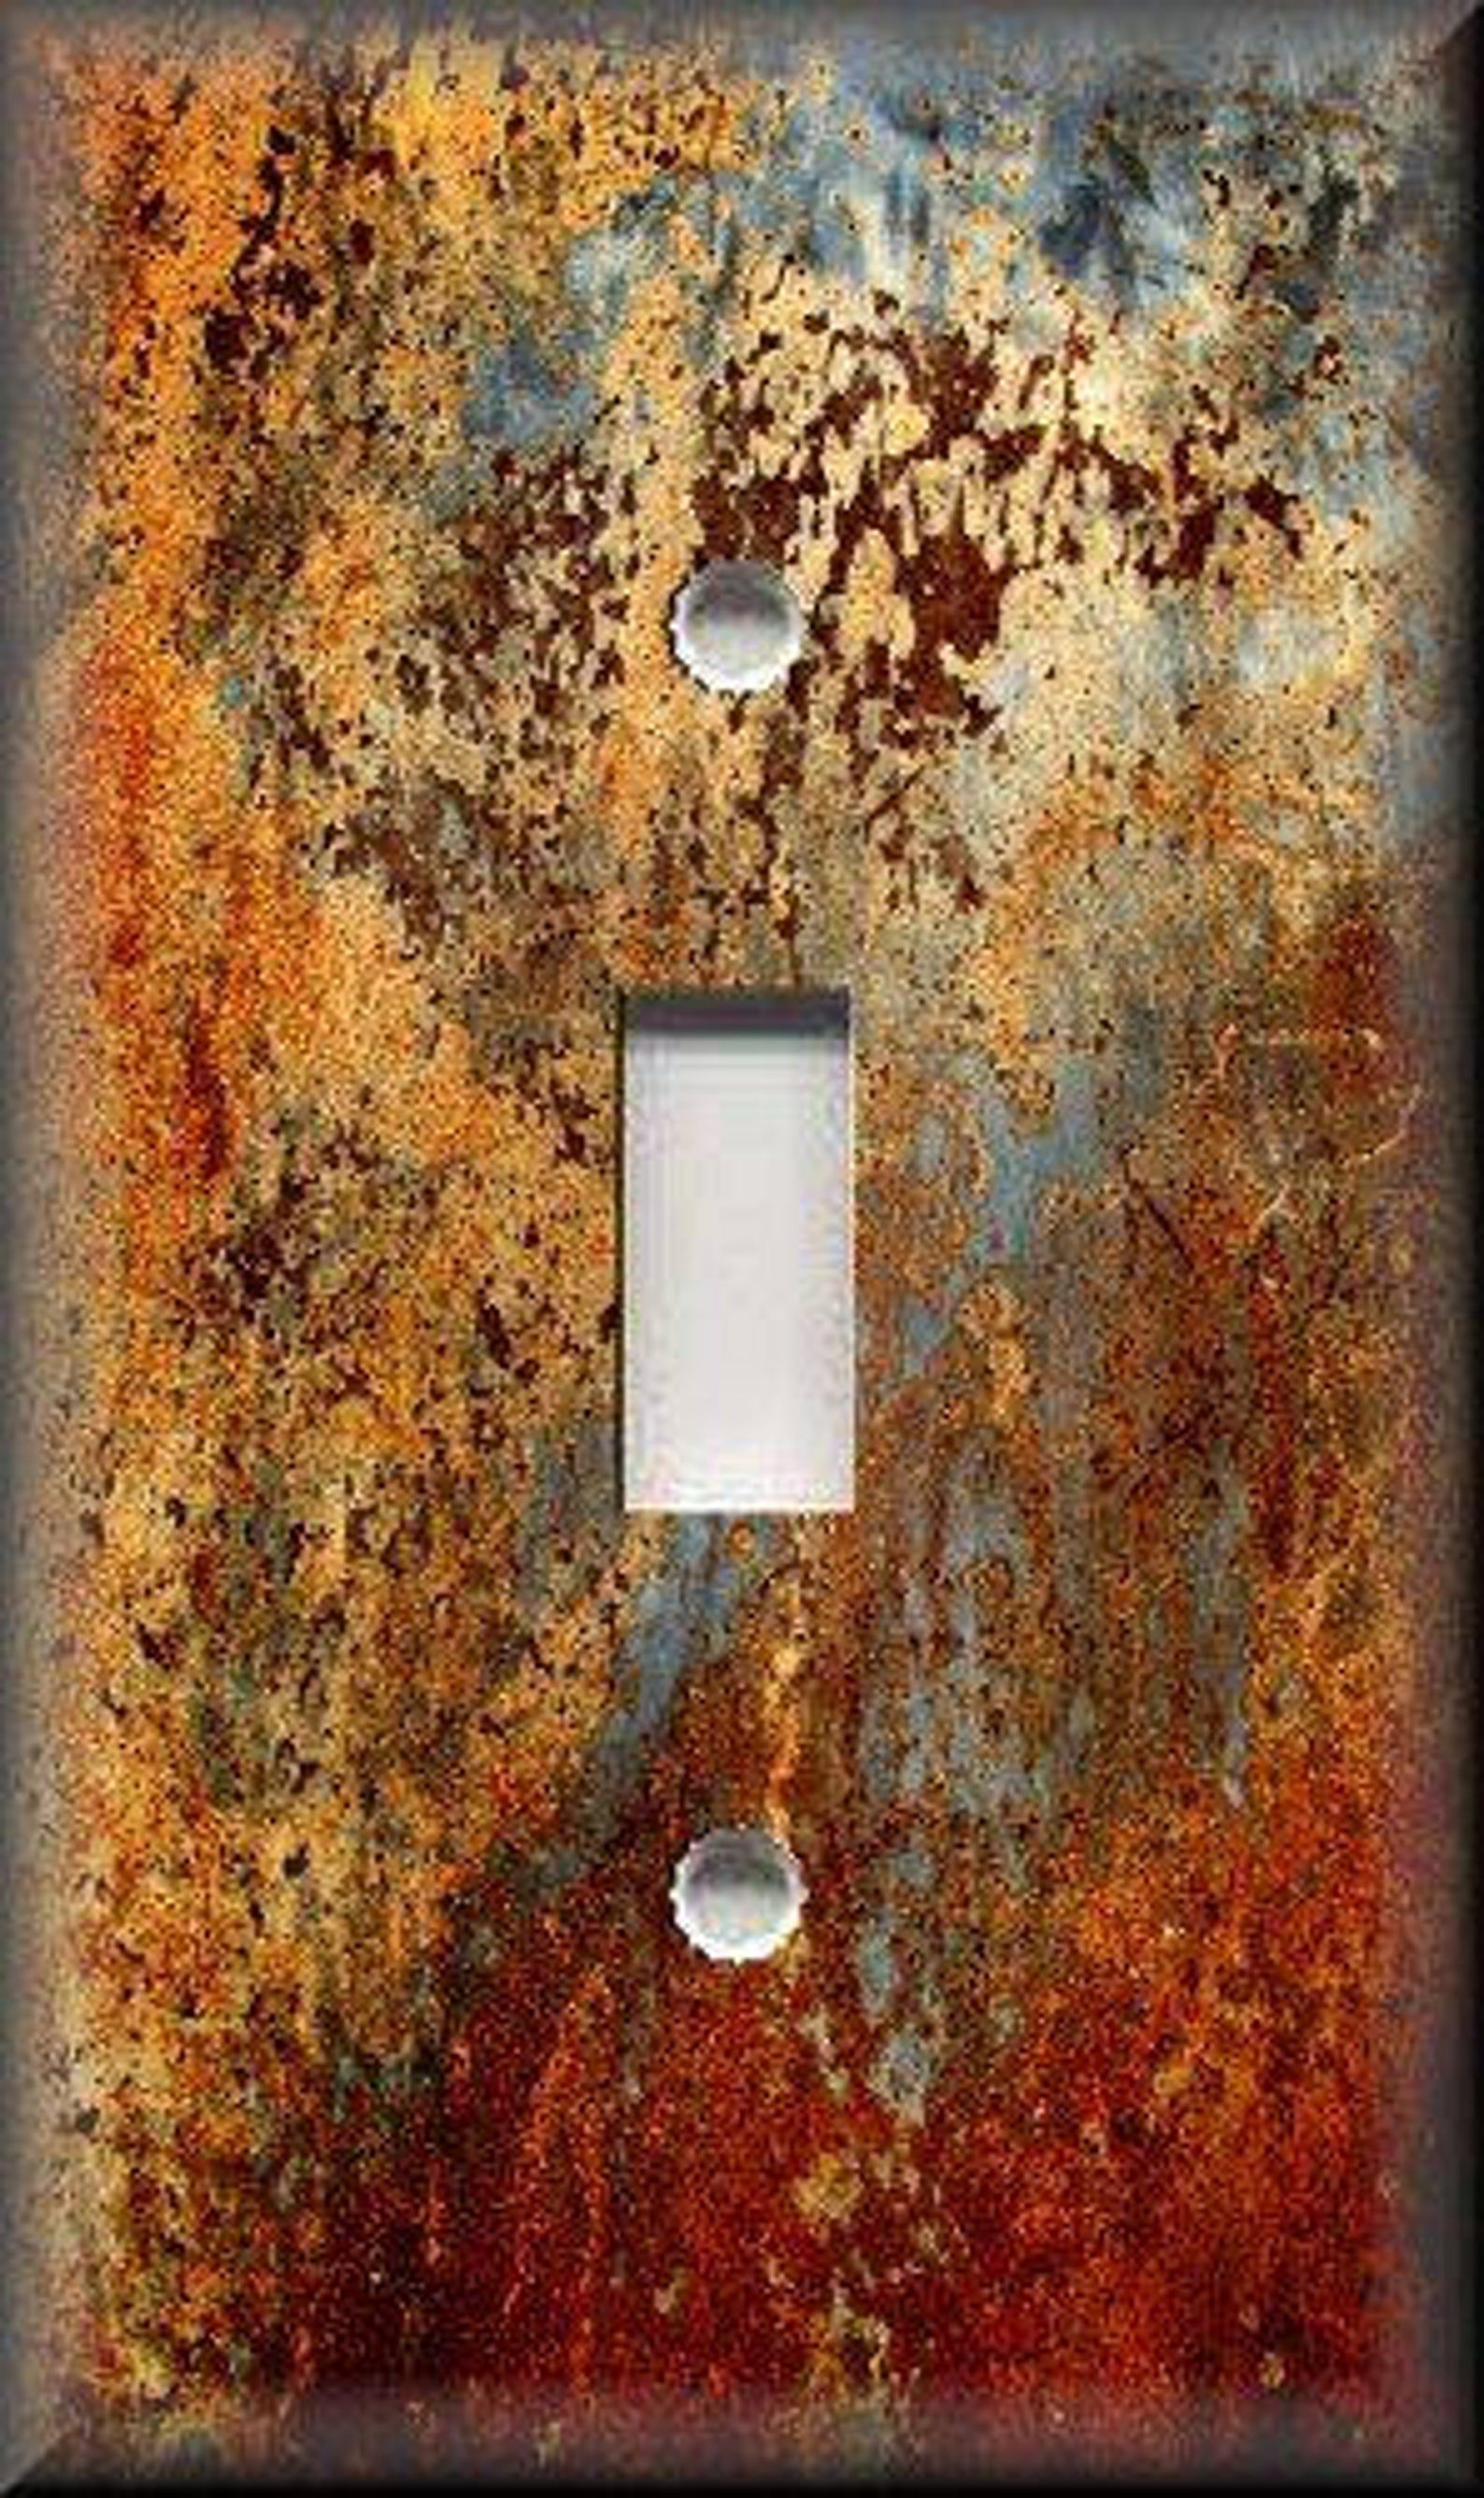 Switch Plates And Outlet Covers Free Shipping Image Of Aged Copper Patina Design Home Decor Rustic Decor Metal Light Switch Covers